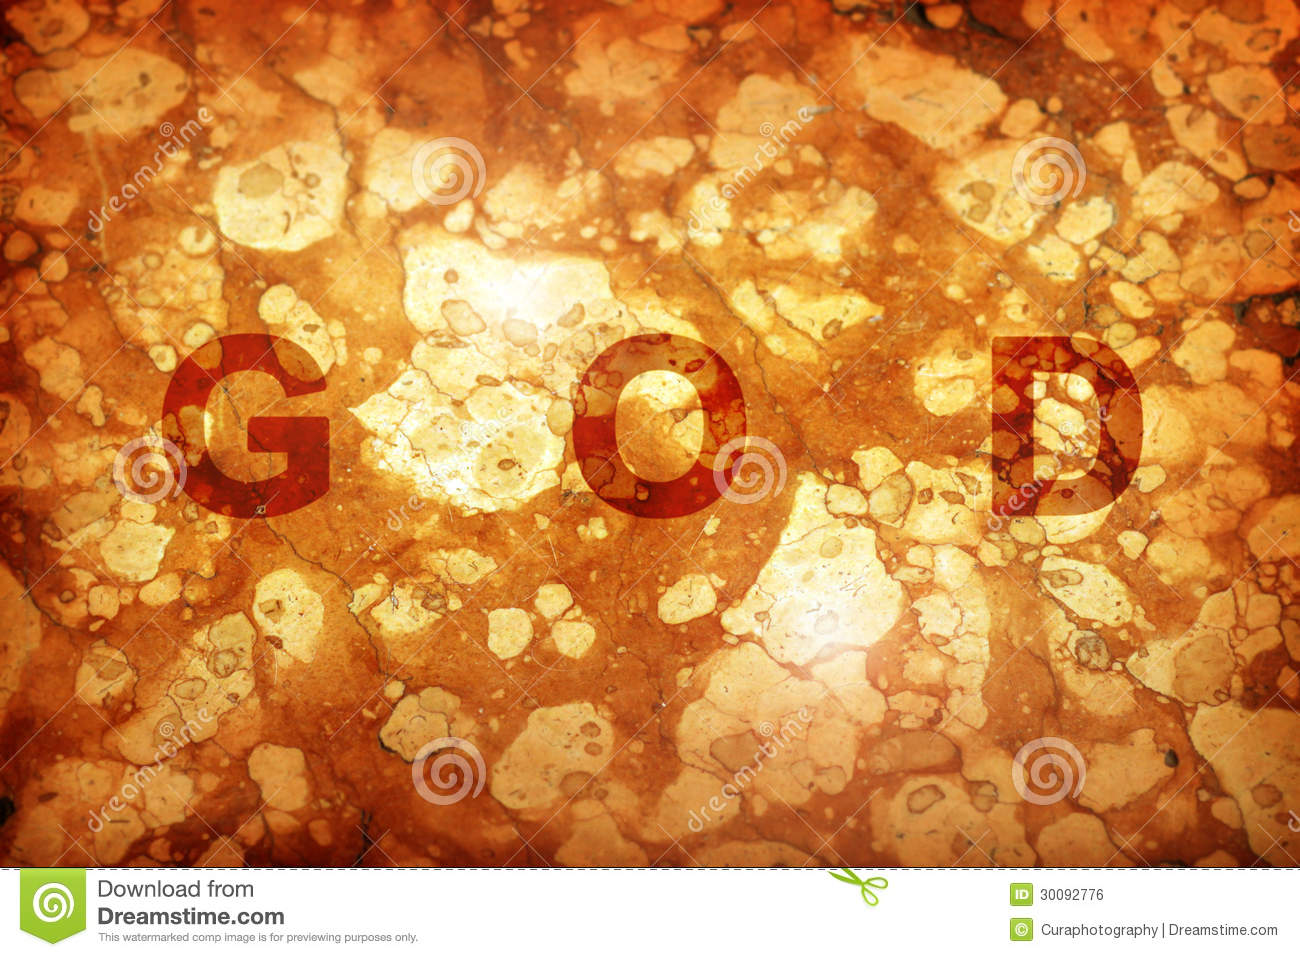 God Background Royalty Free Stock Image - Image: 30092776